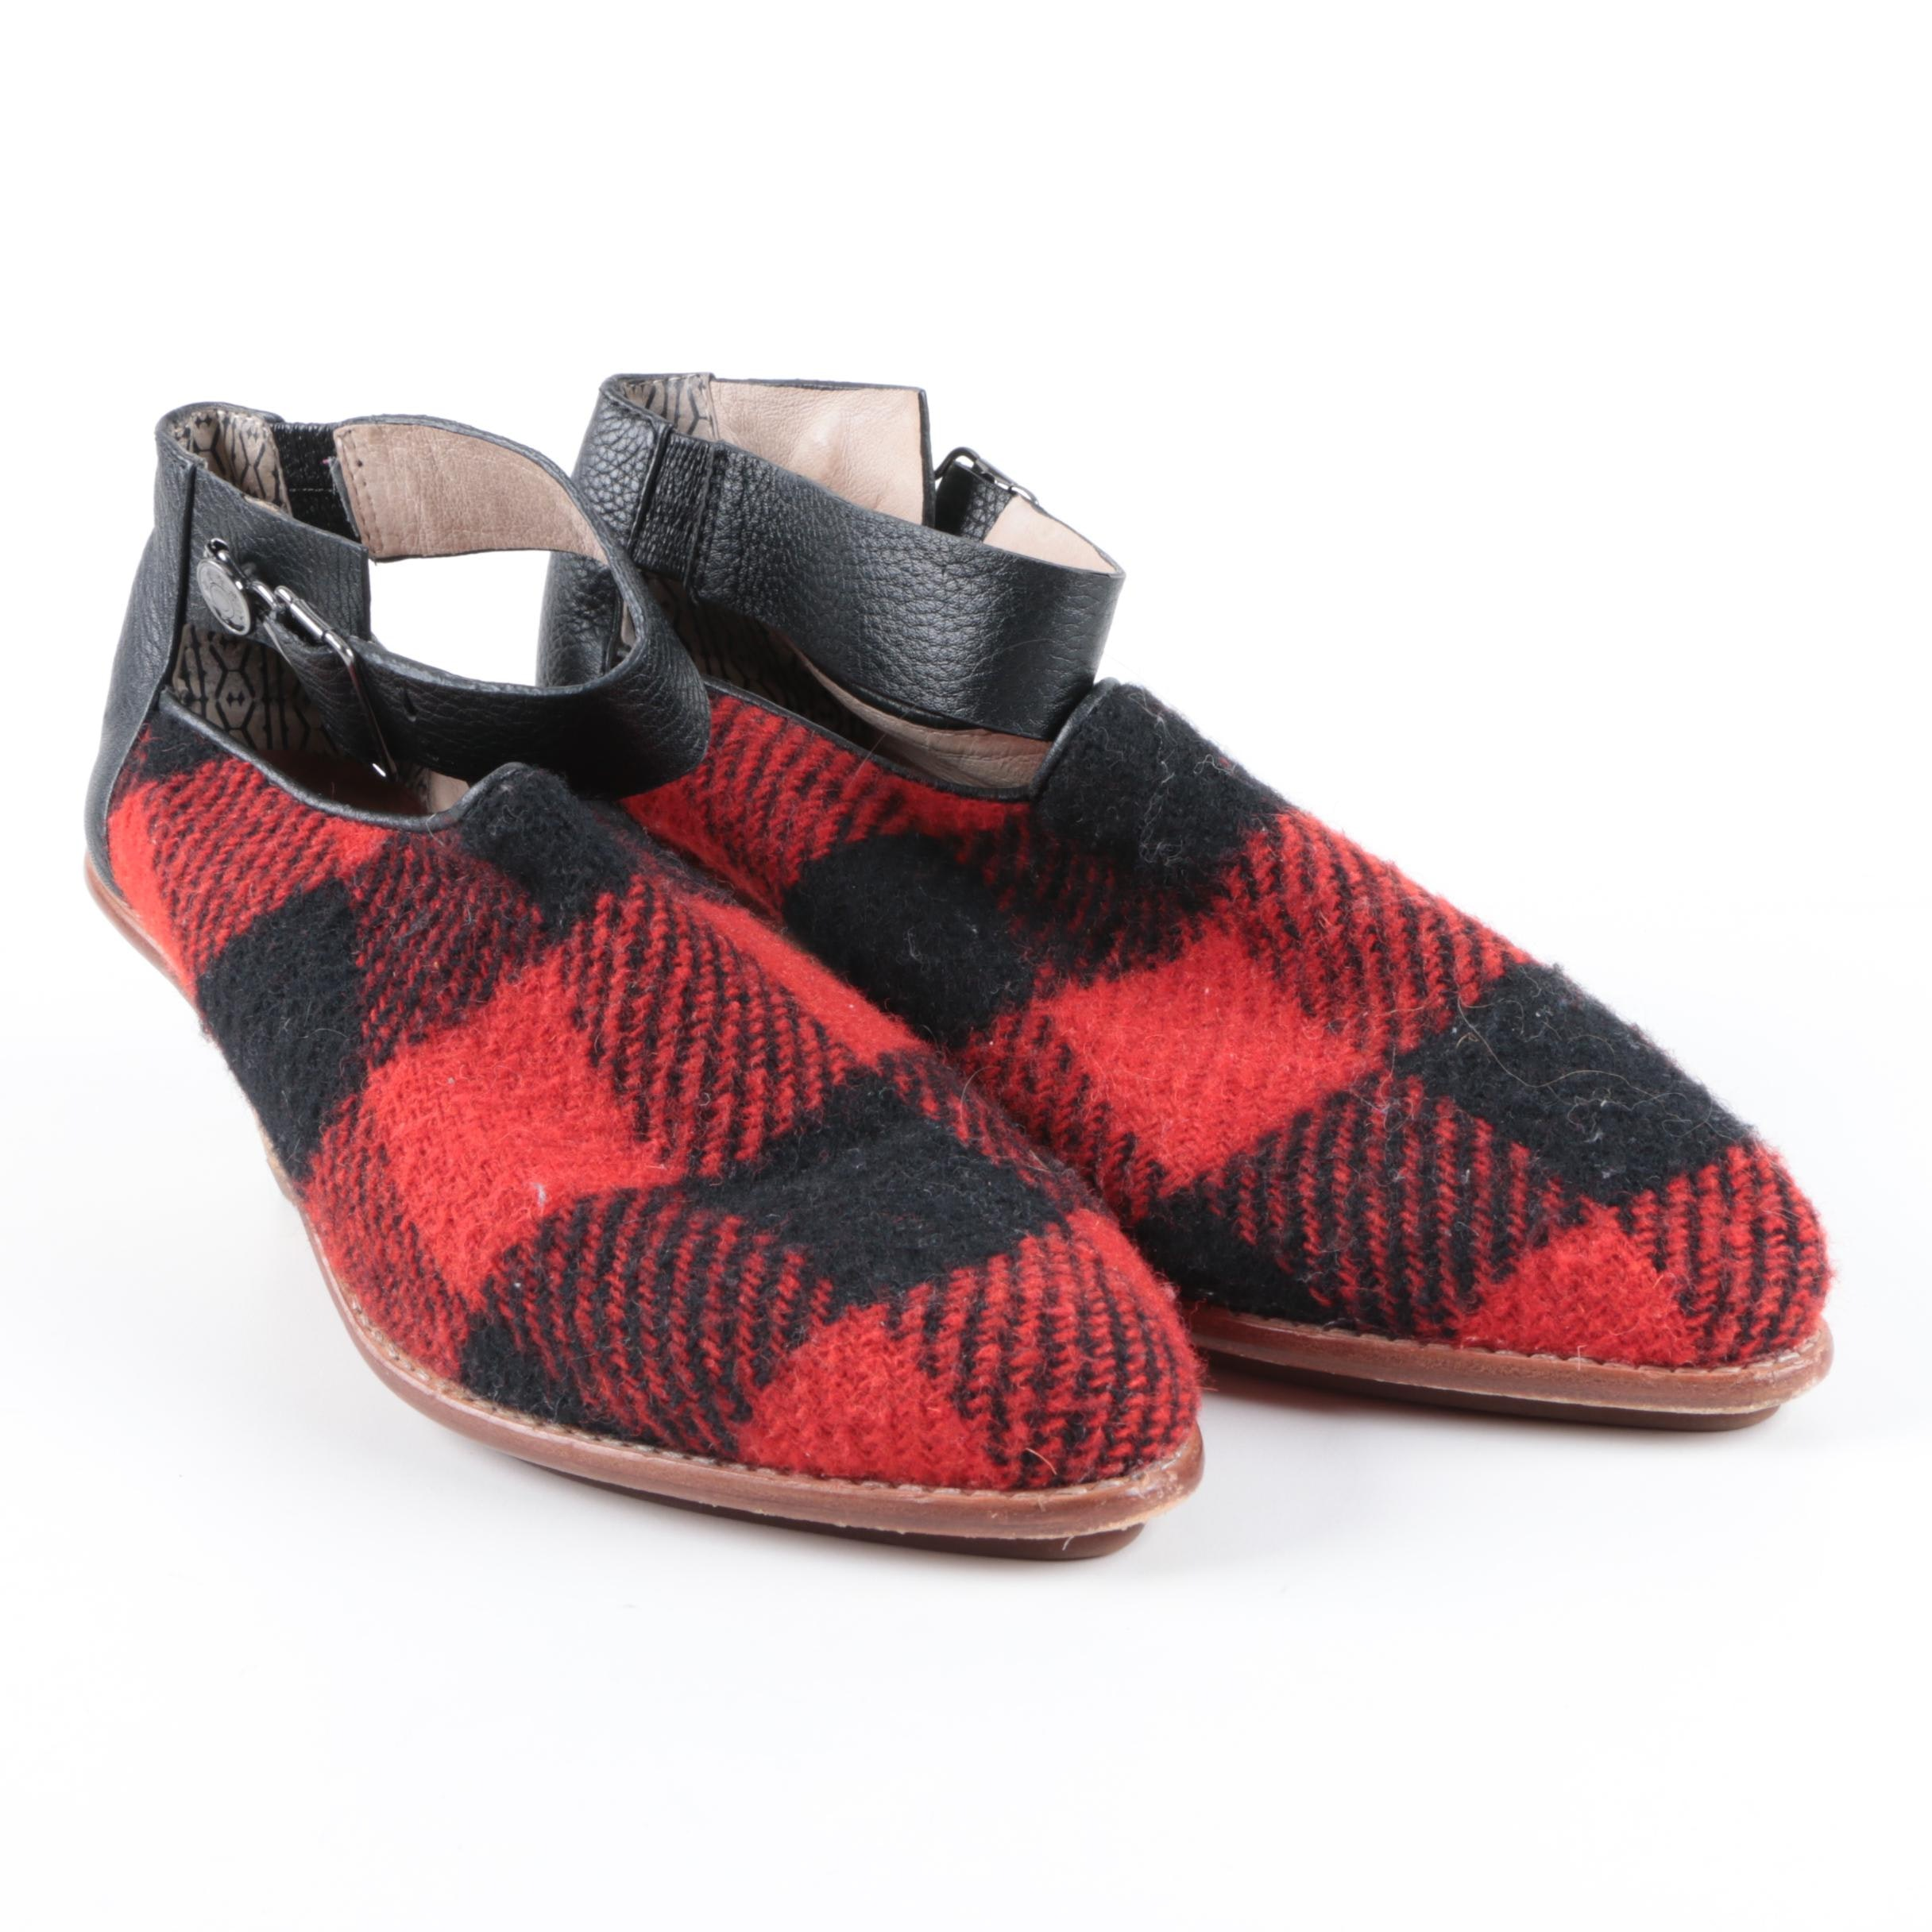 Women's Matt Bernson Plaid and Leather Heeled Shoes with Ankle Straps